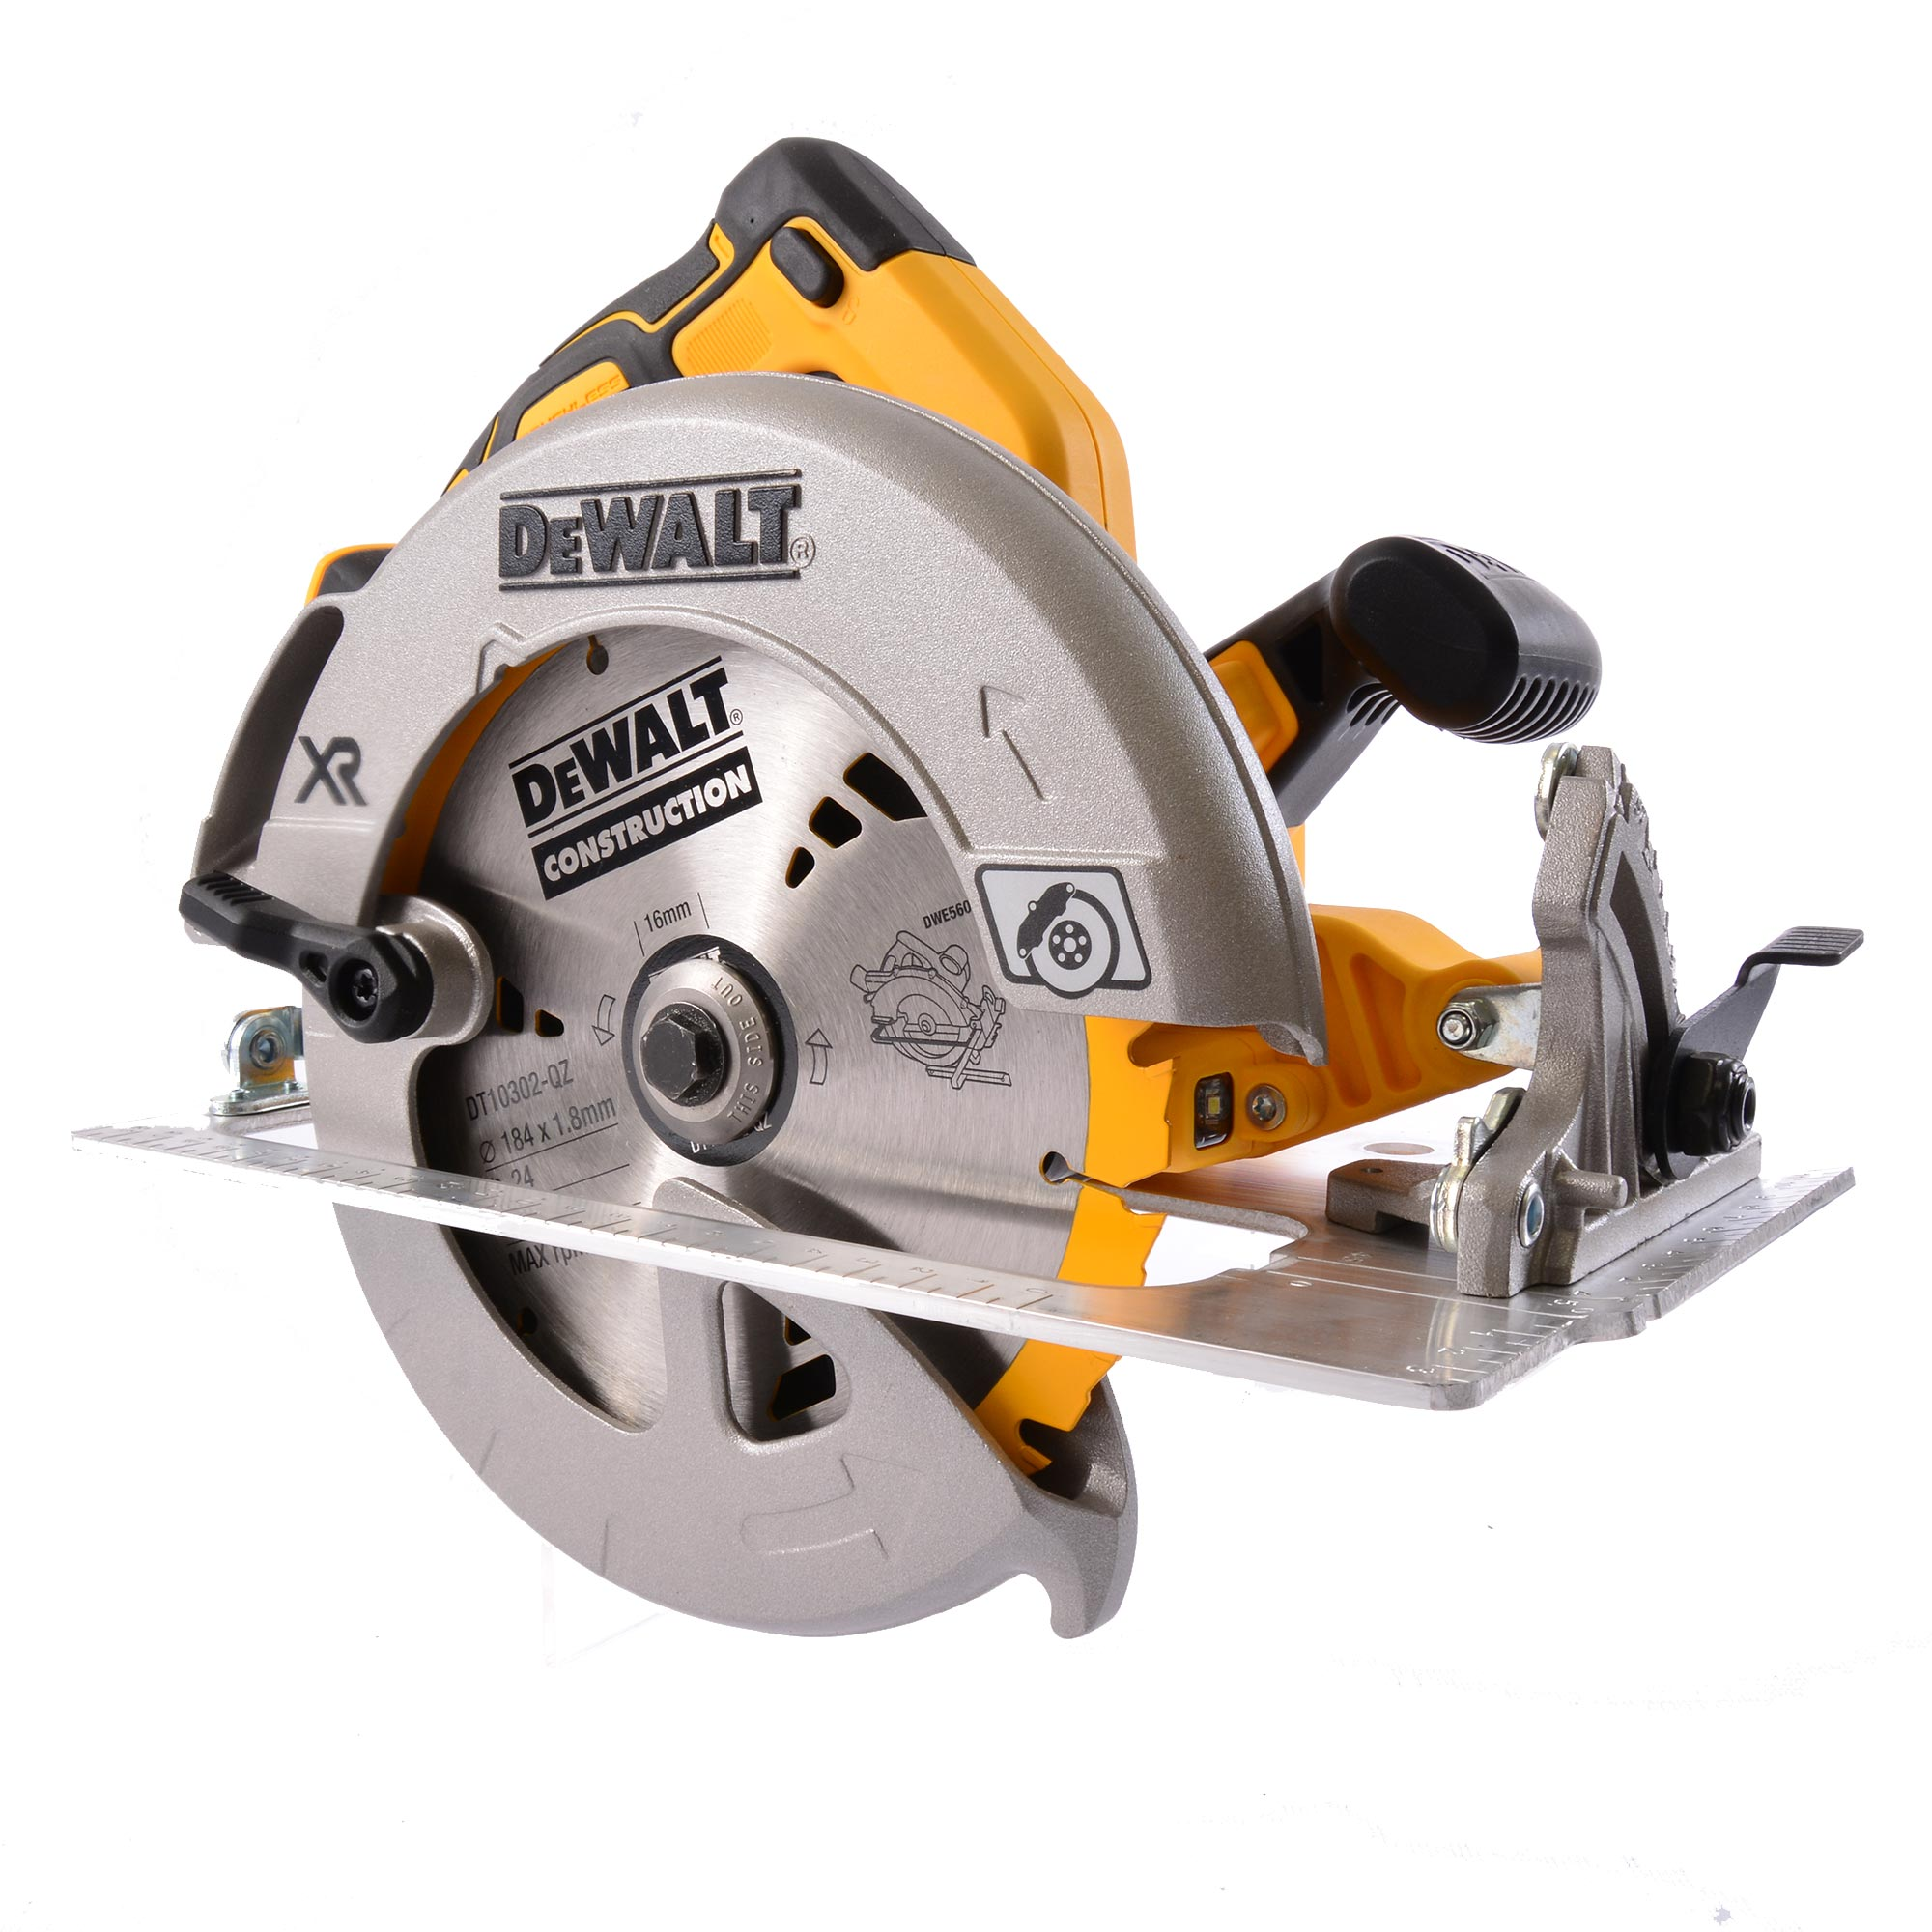 dewalt dcs570 dewalt 18v xr brushless 184mm circular saw. Black Bedroom Furniture Sets. Home Design Ideas